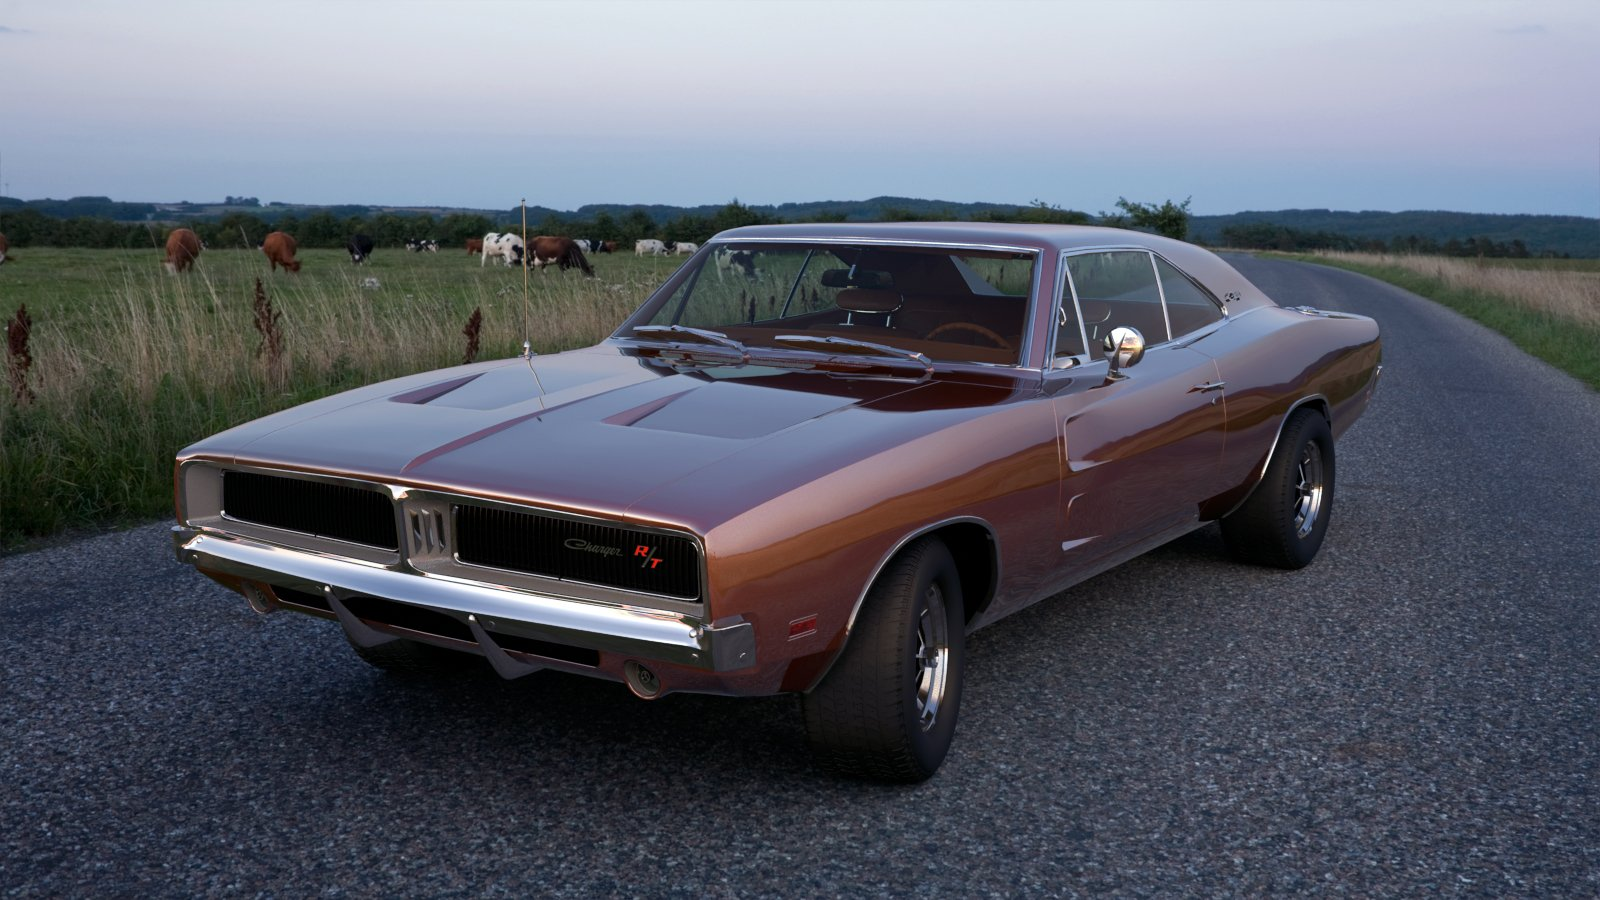 1969 dodge charger r t wallpaper 1600x900 251009 wallpaperup. Cars Review. Best American Auto & Cars Review